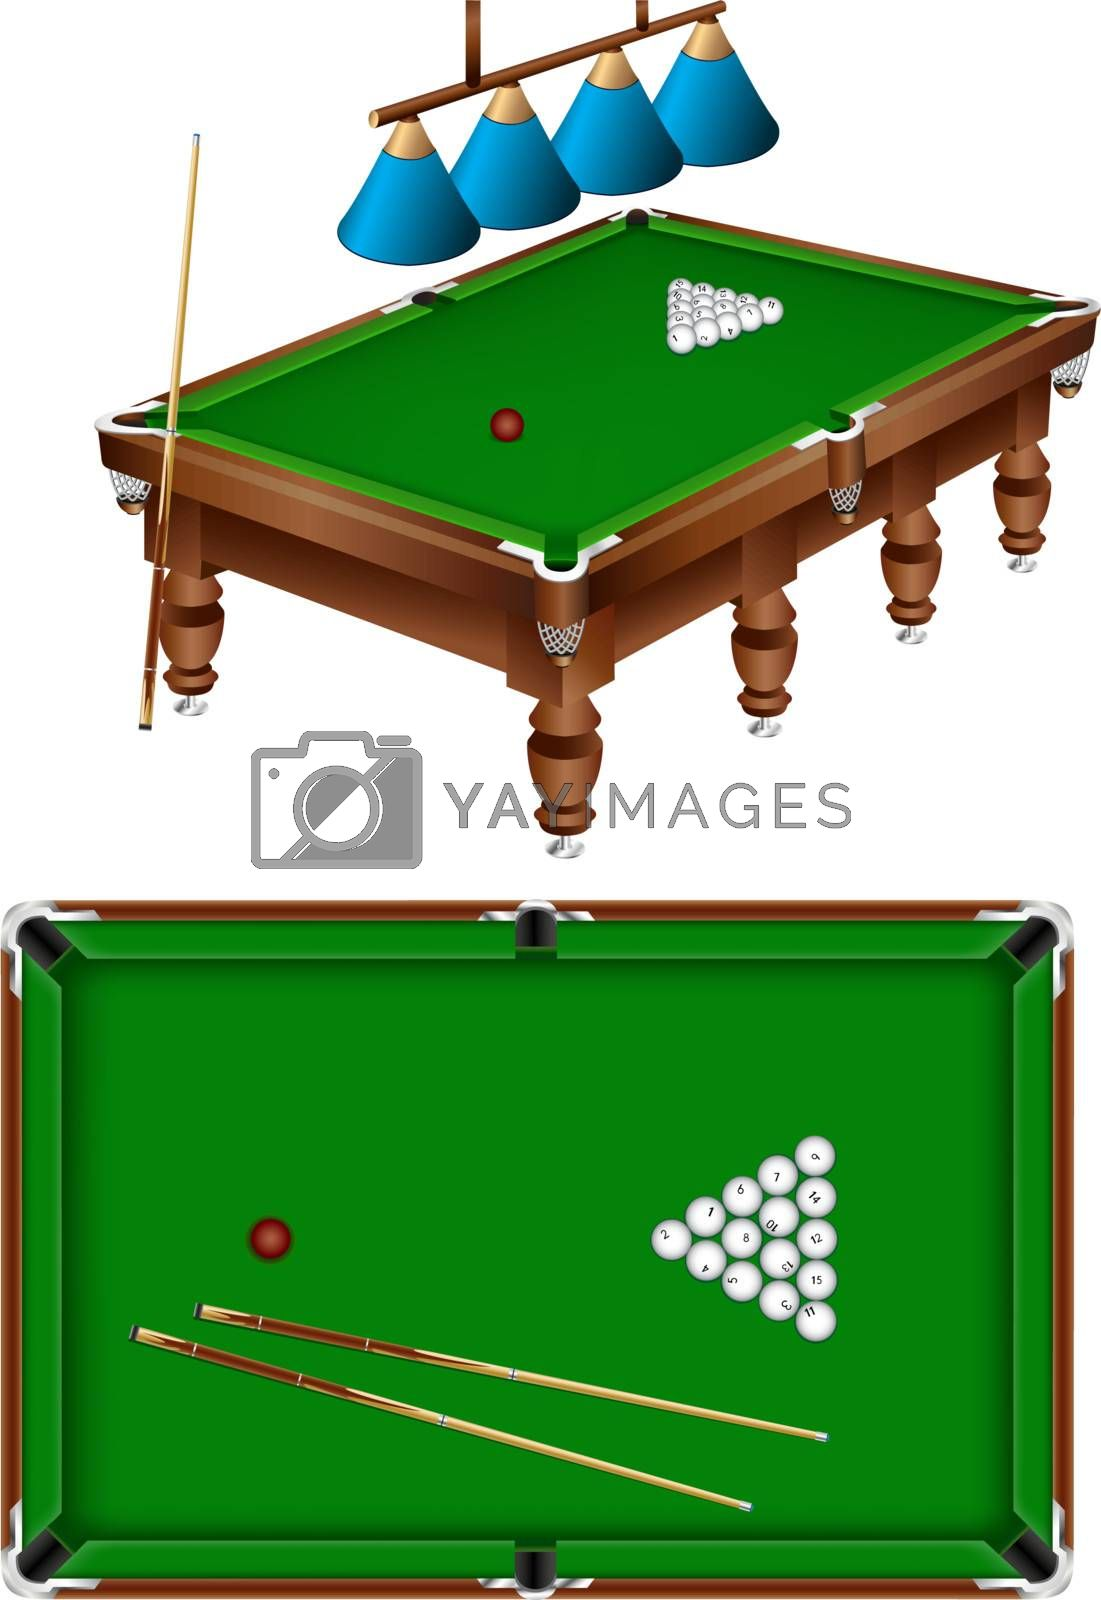 The russian billiard table with a cue, lamps and balls isolated on a white background